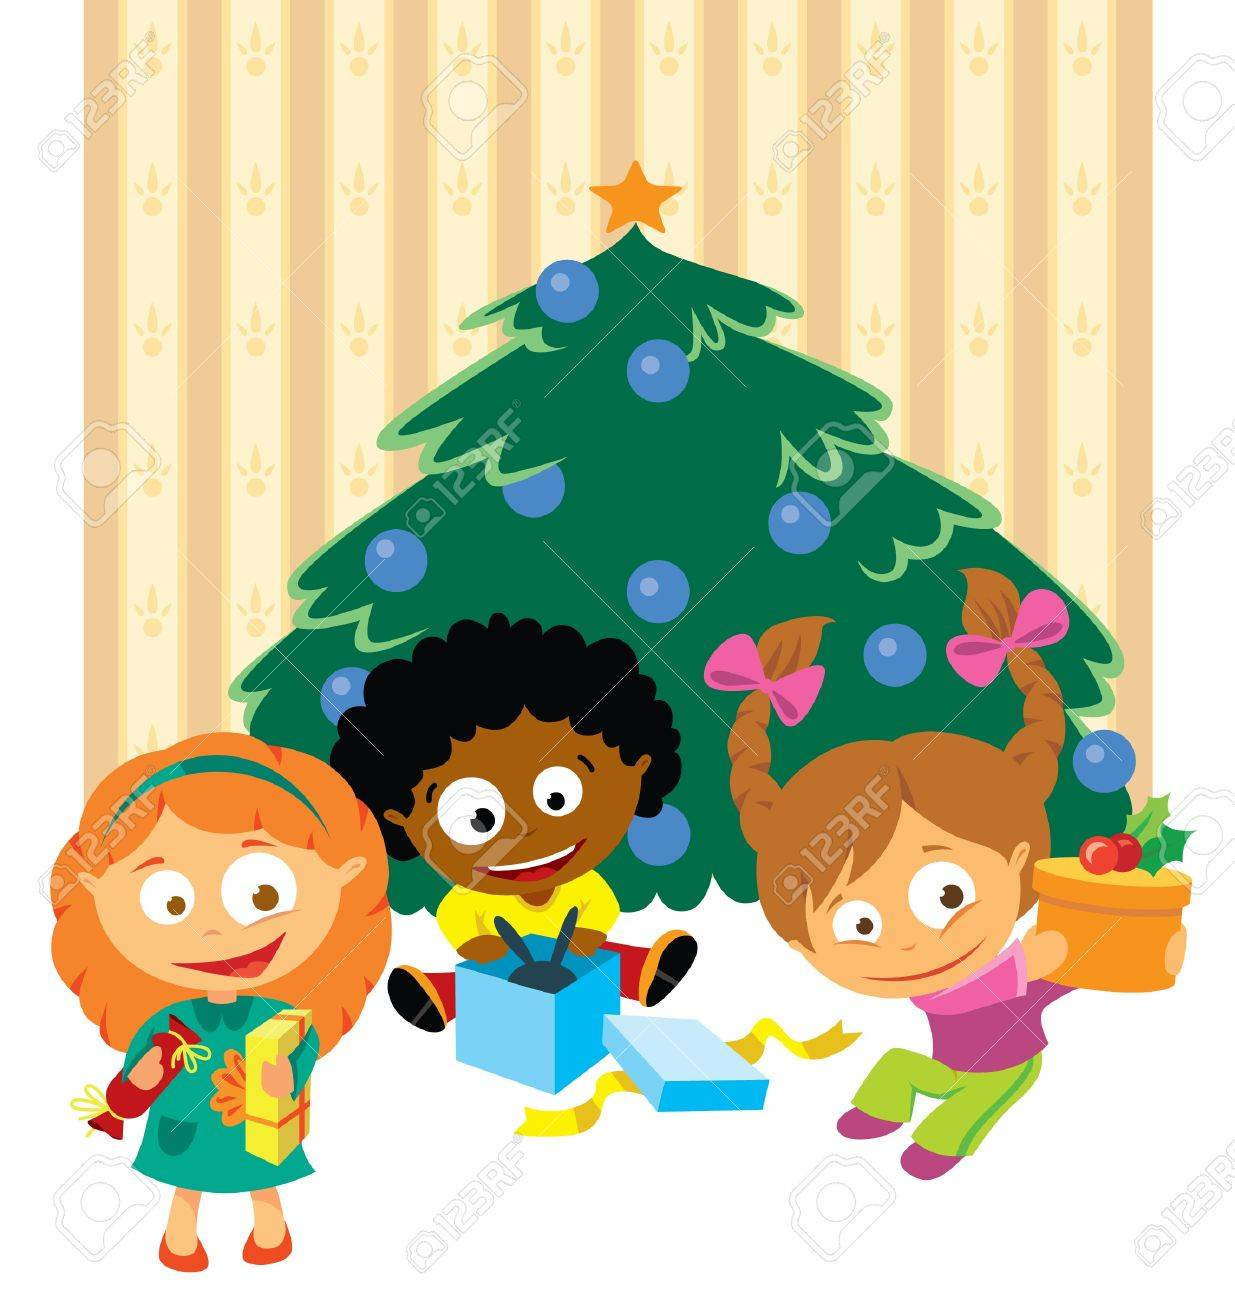 children open a gift under the christmas tree royalty free